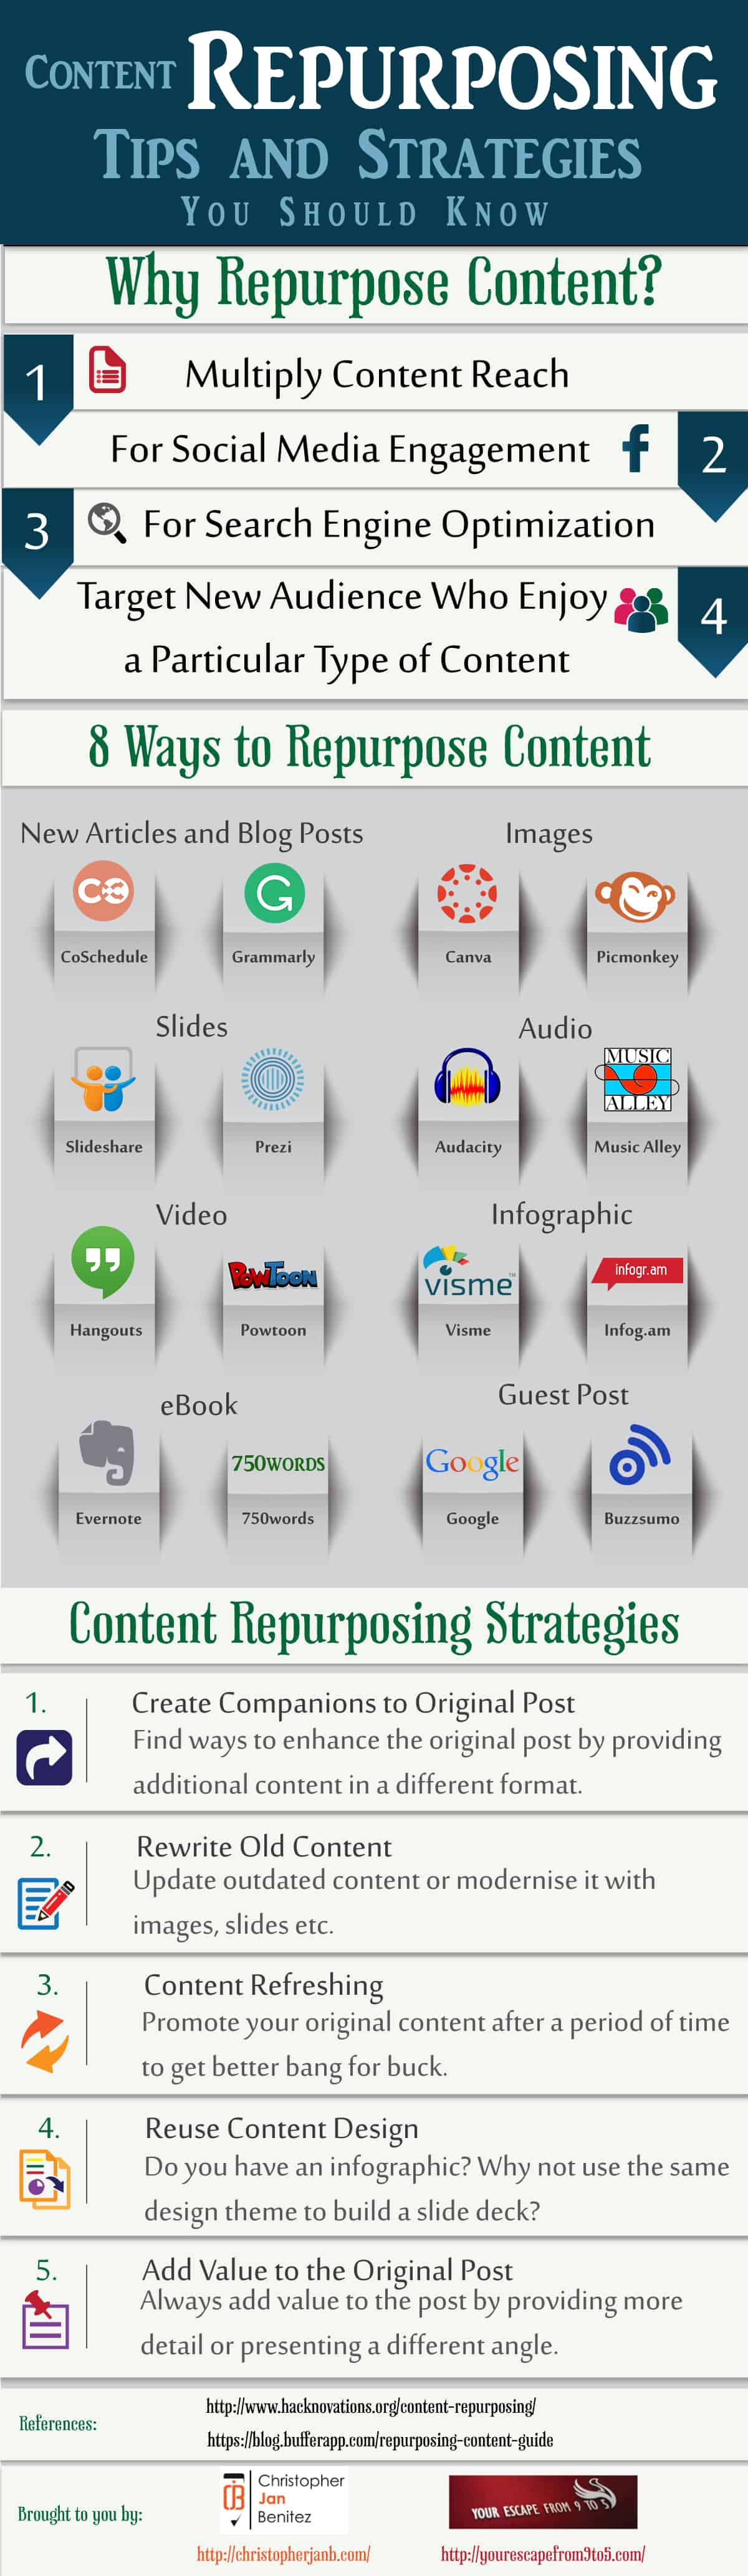 Content-Repurposing-Tips-and-Strategies-You-Should-Know-–-INFOGRAPHIC